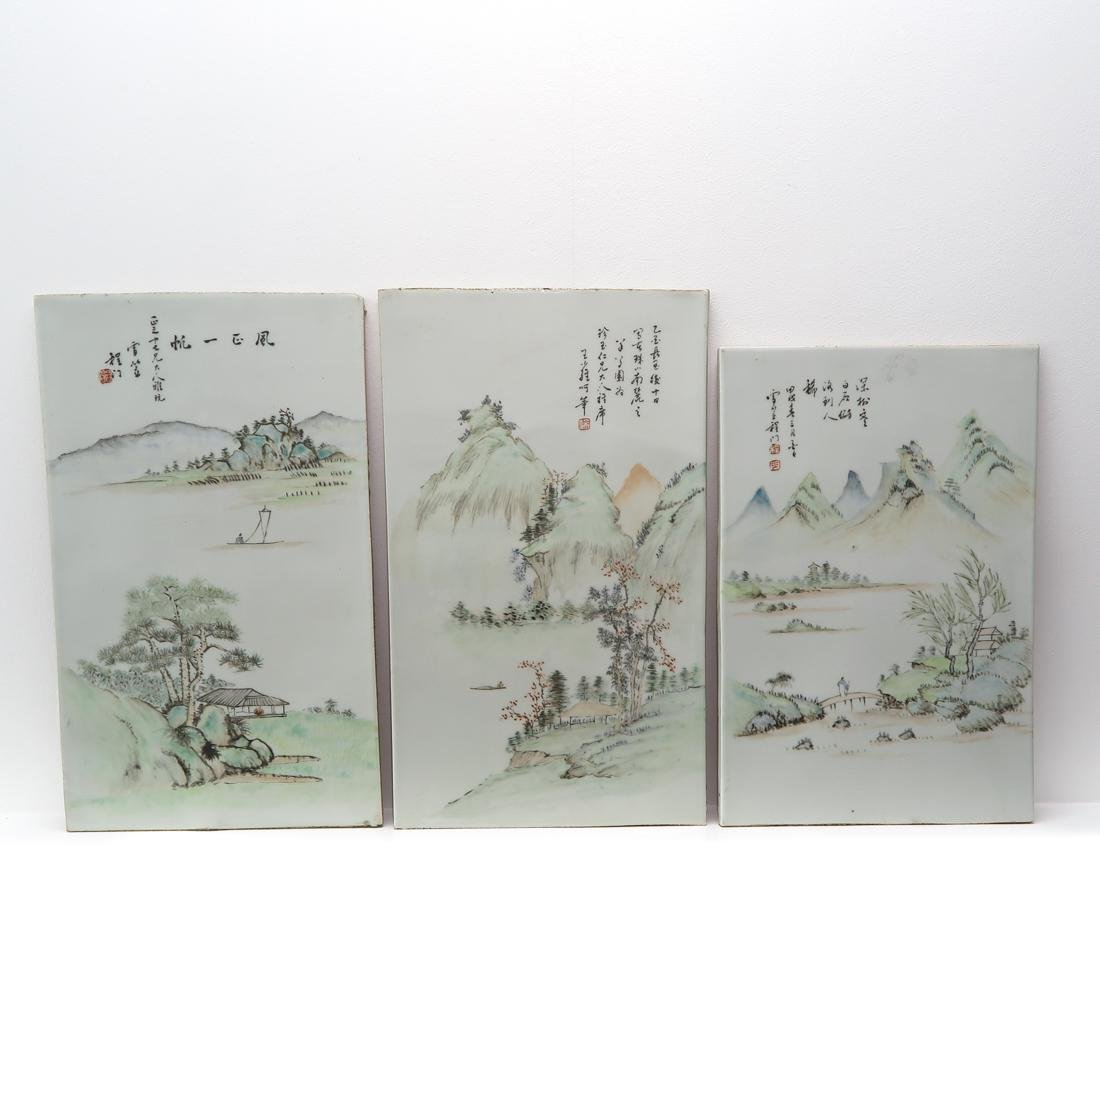 Lot of 3 Chinese Tiles